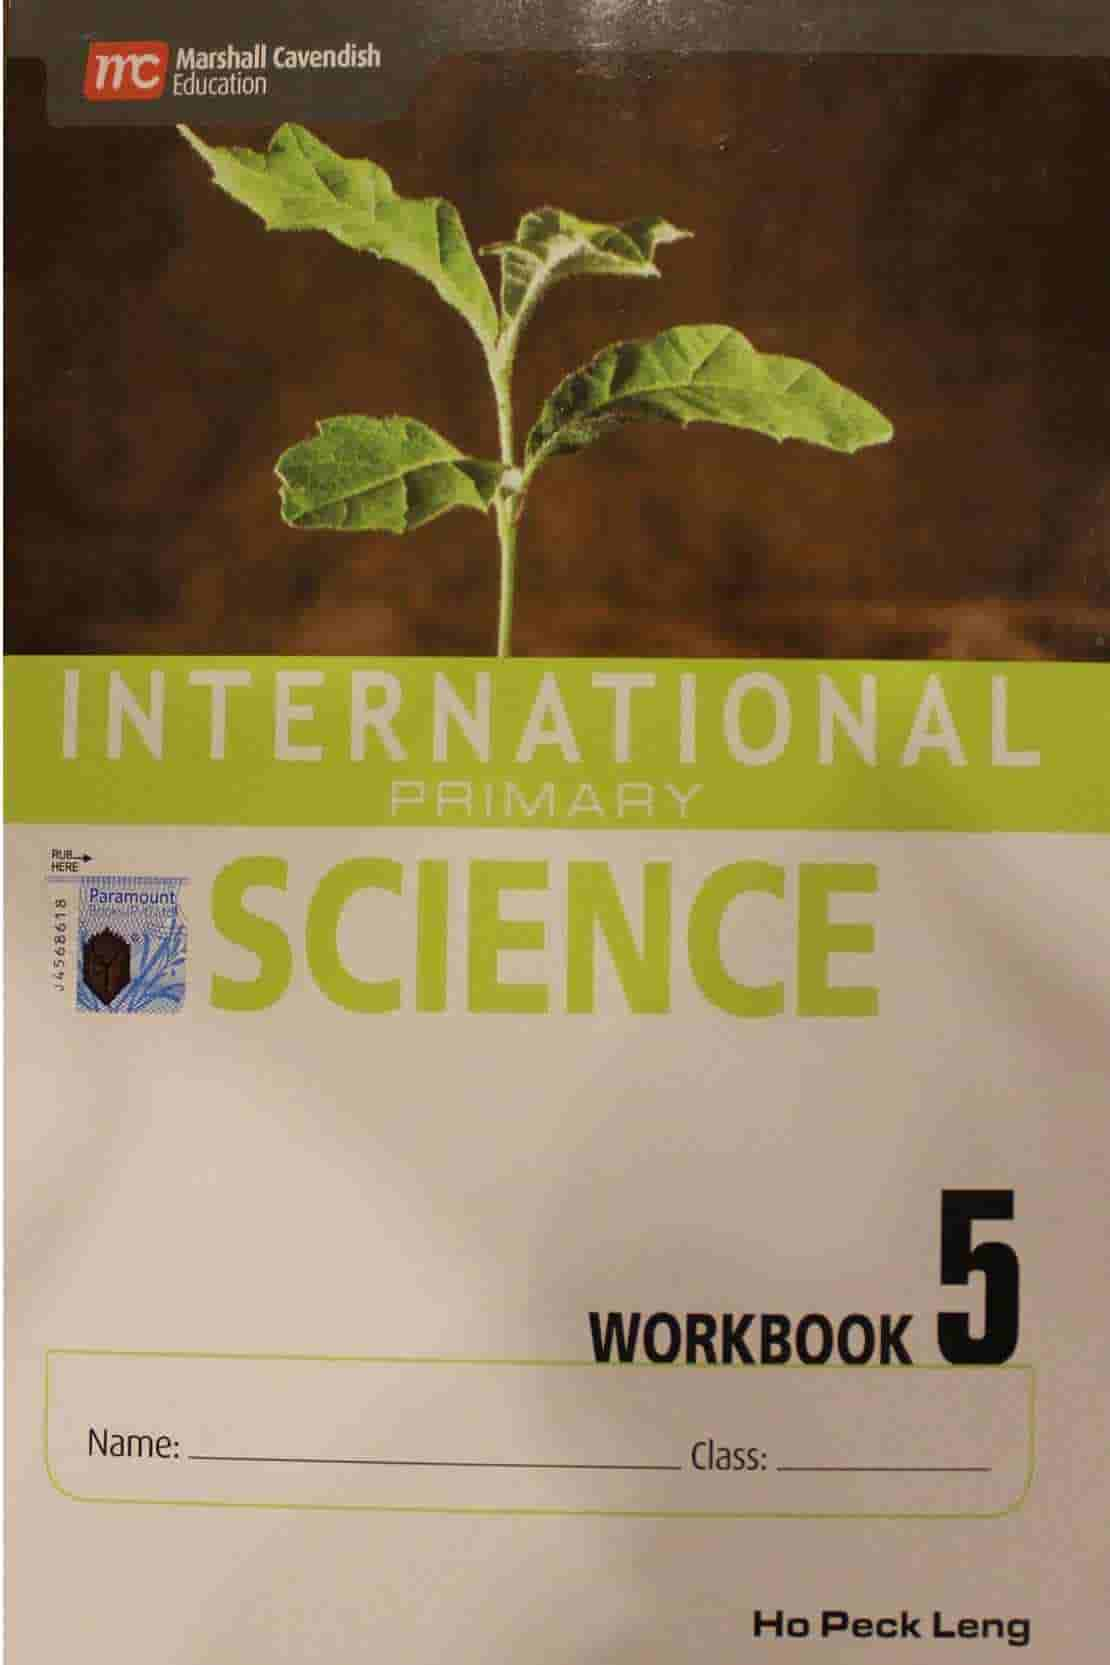 INTERNATIONAL PRIMARY SCIENCE WORKBOOK 5